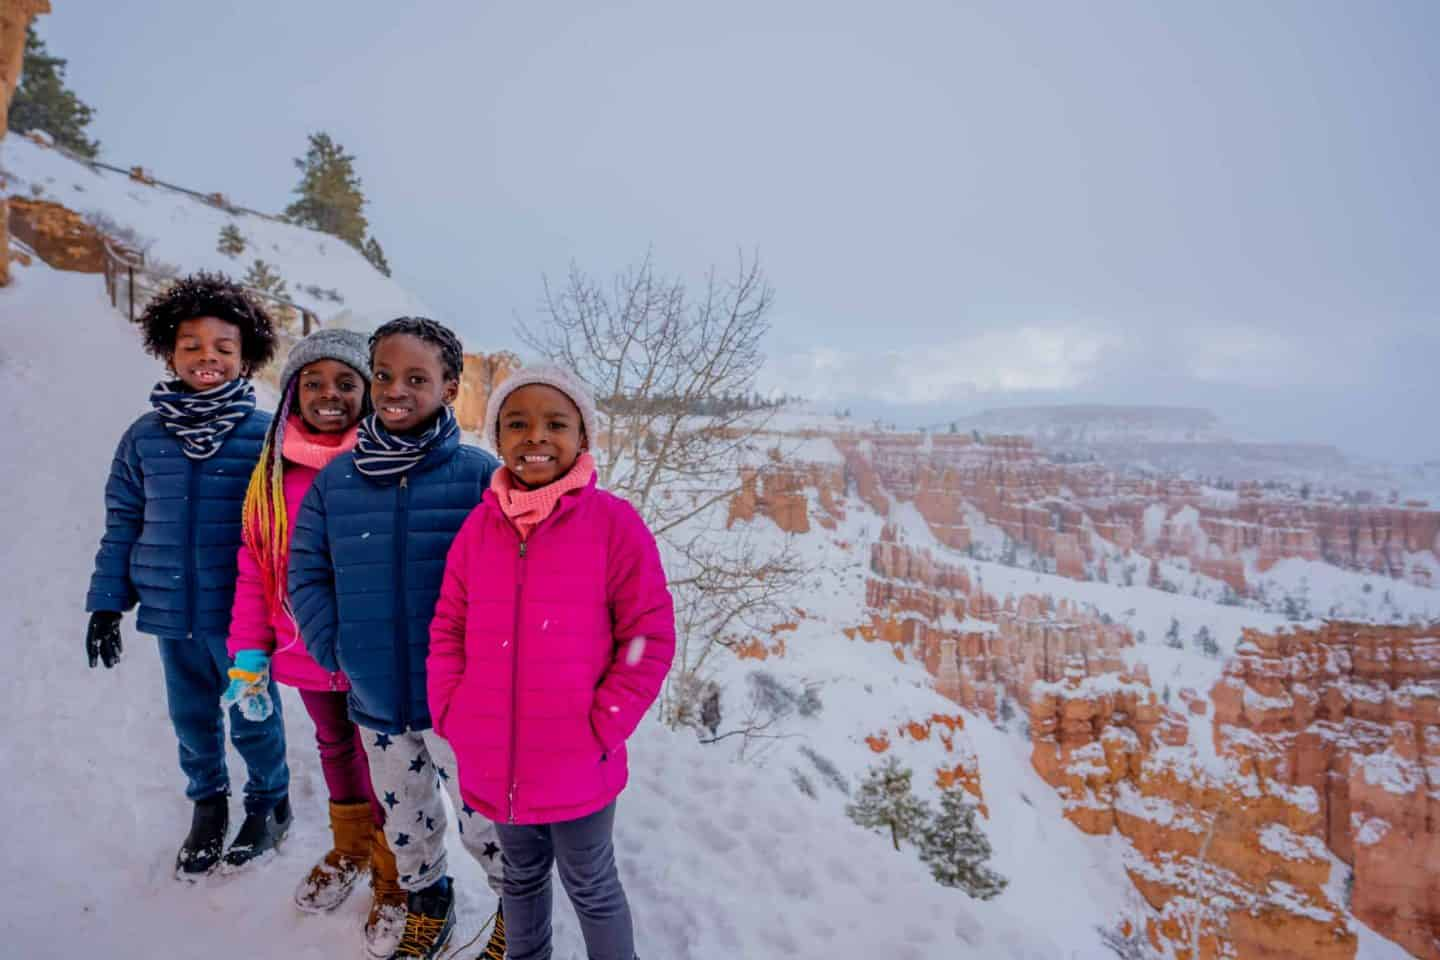 Children standing in front of a grand view at Bryce Canyon National Park.